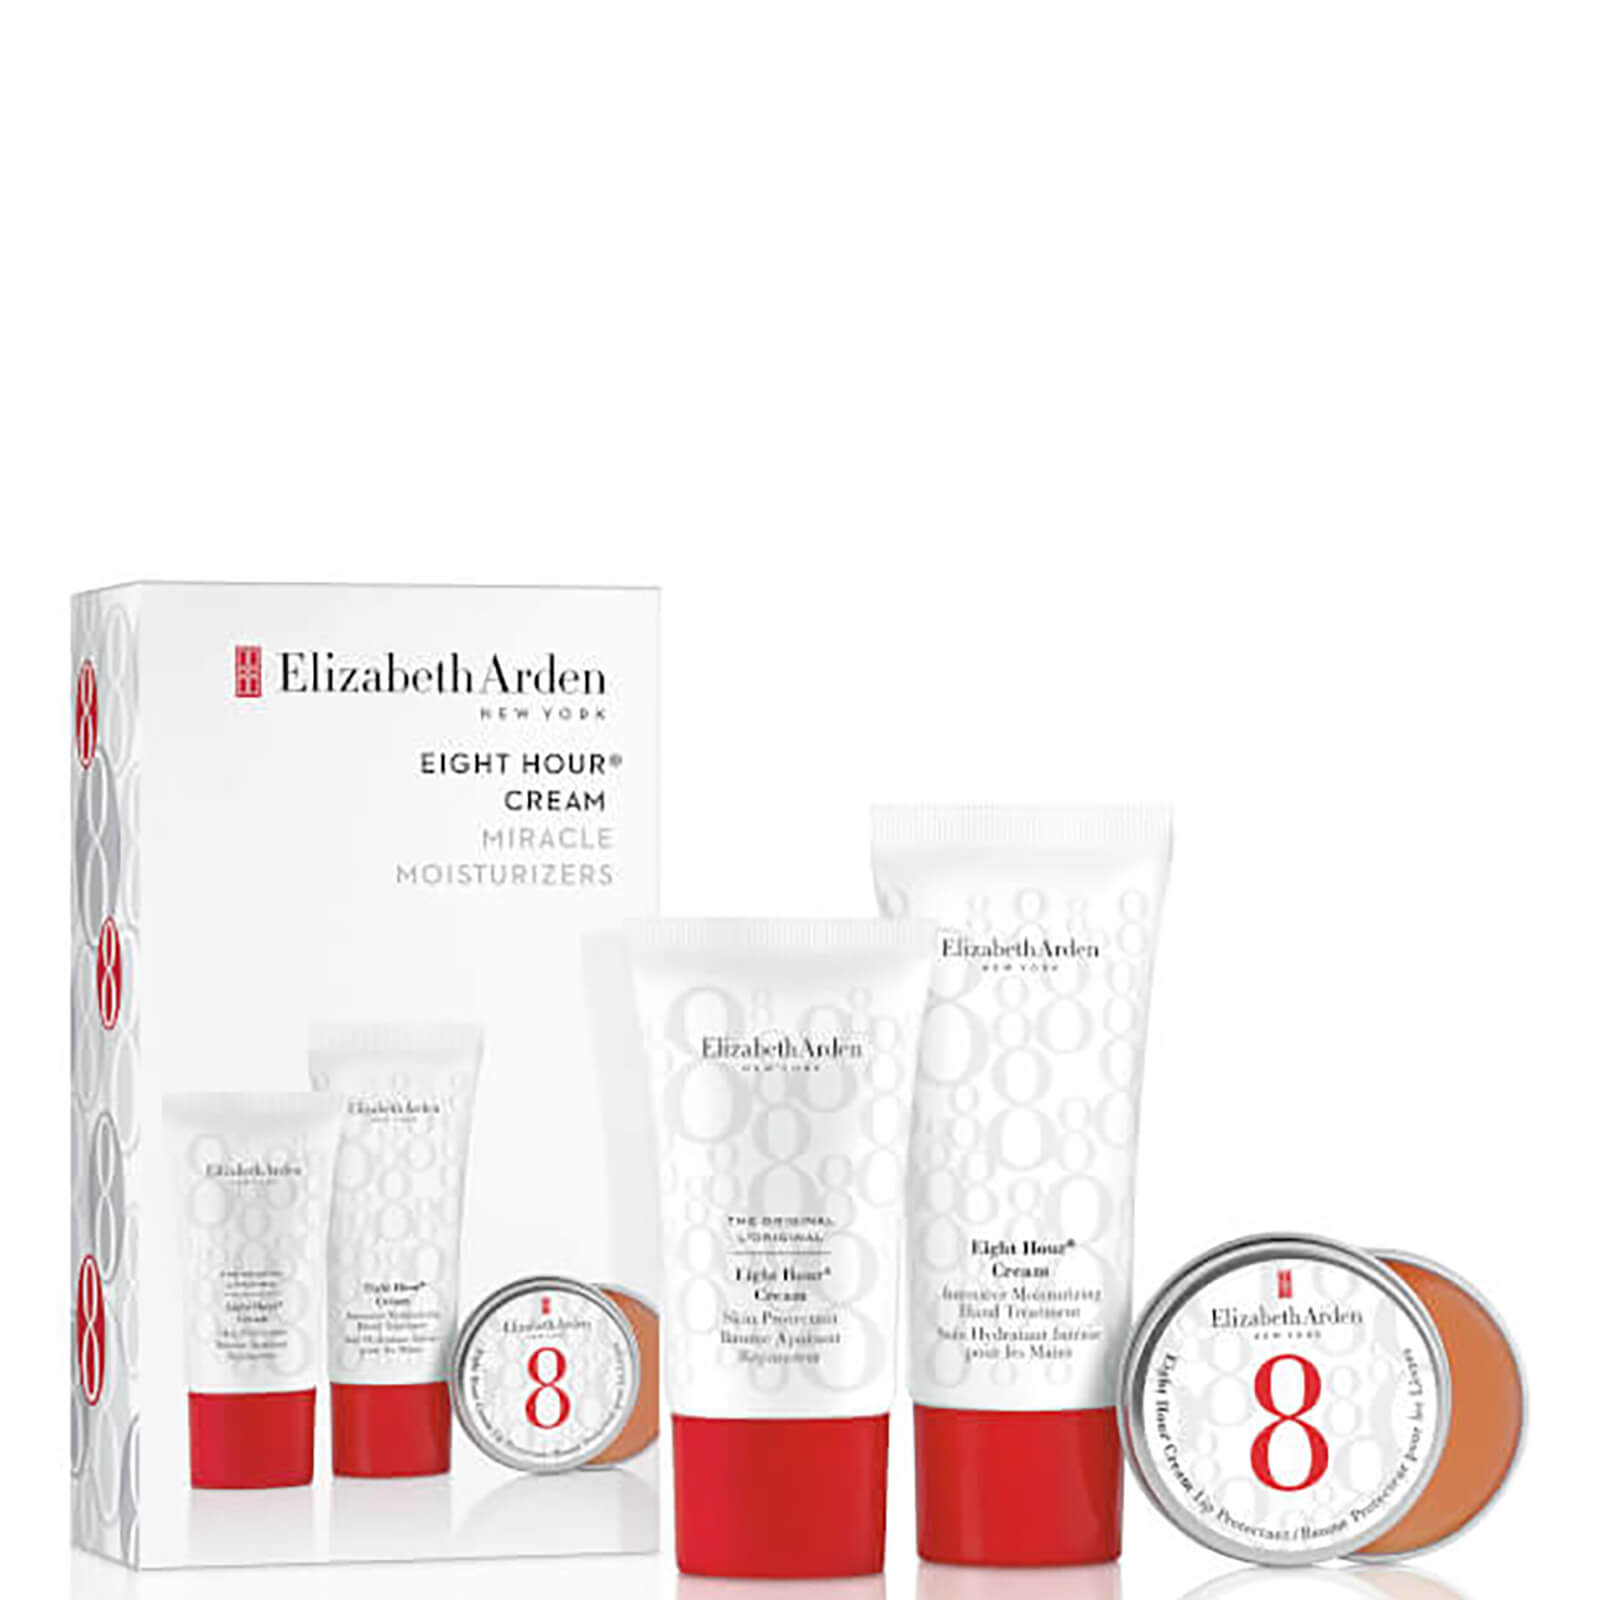 Elizabeth Arden Eight Hour Cream Skincare Starter Kit (Worth £33.00)